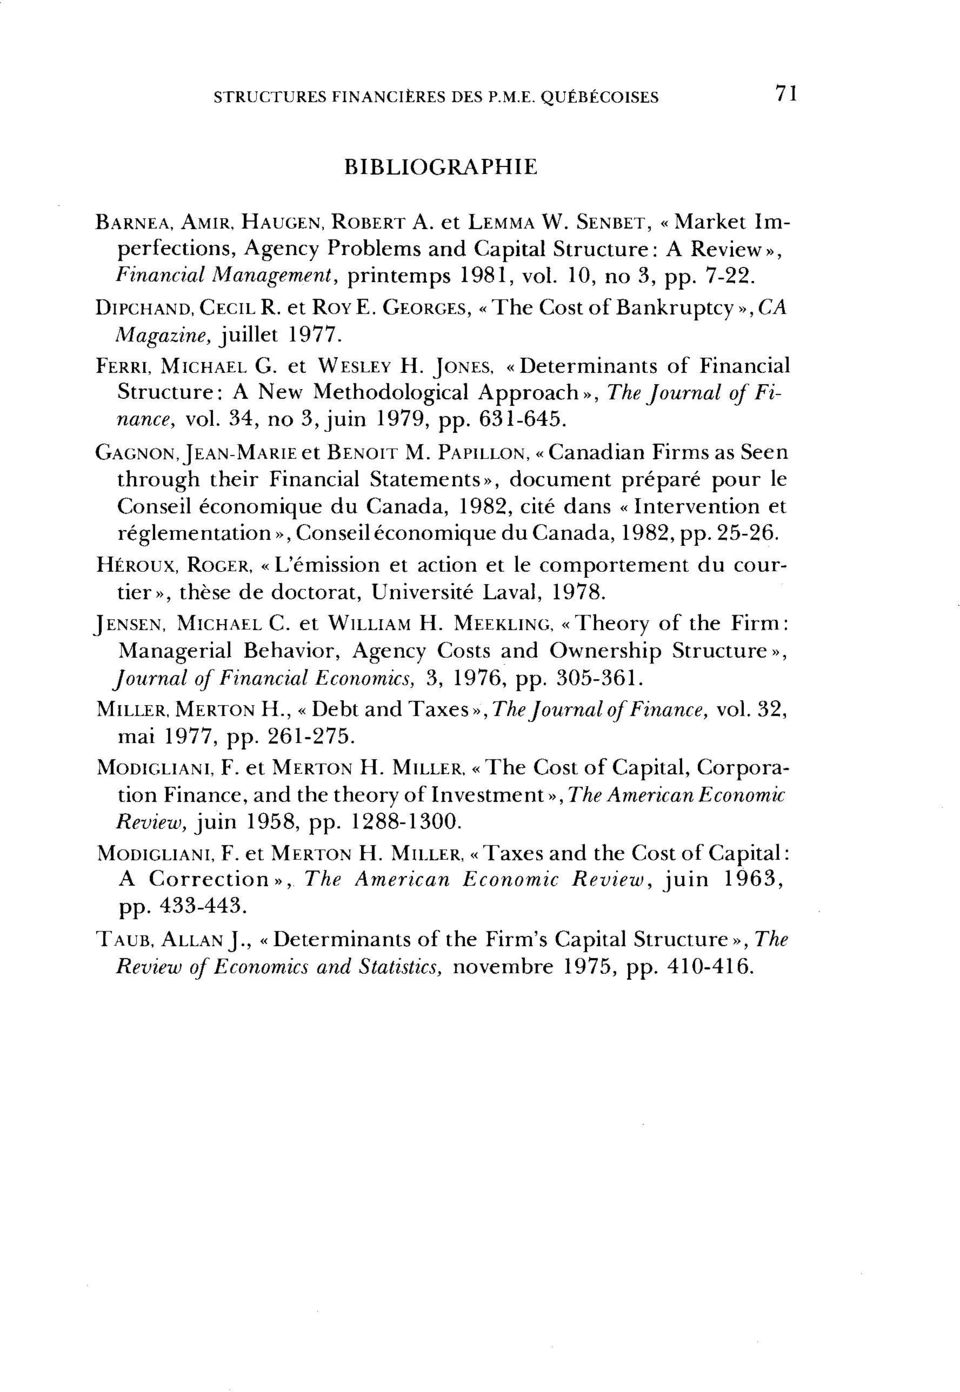 GEORGES, «The Costof Bankruptcy»,CA Magazine, juillet 1977. FERRI, MICHAEL G. et WESLEY H. JONES, «Déterminants of Financial Structure: A New Methodological Approach», The Journal of Finance, vol.